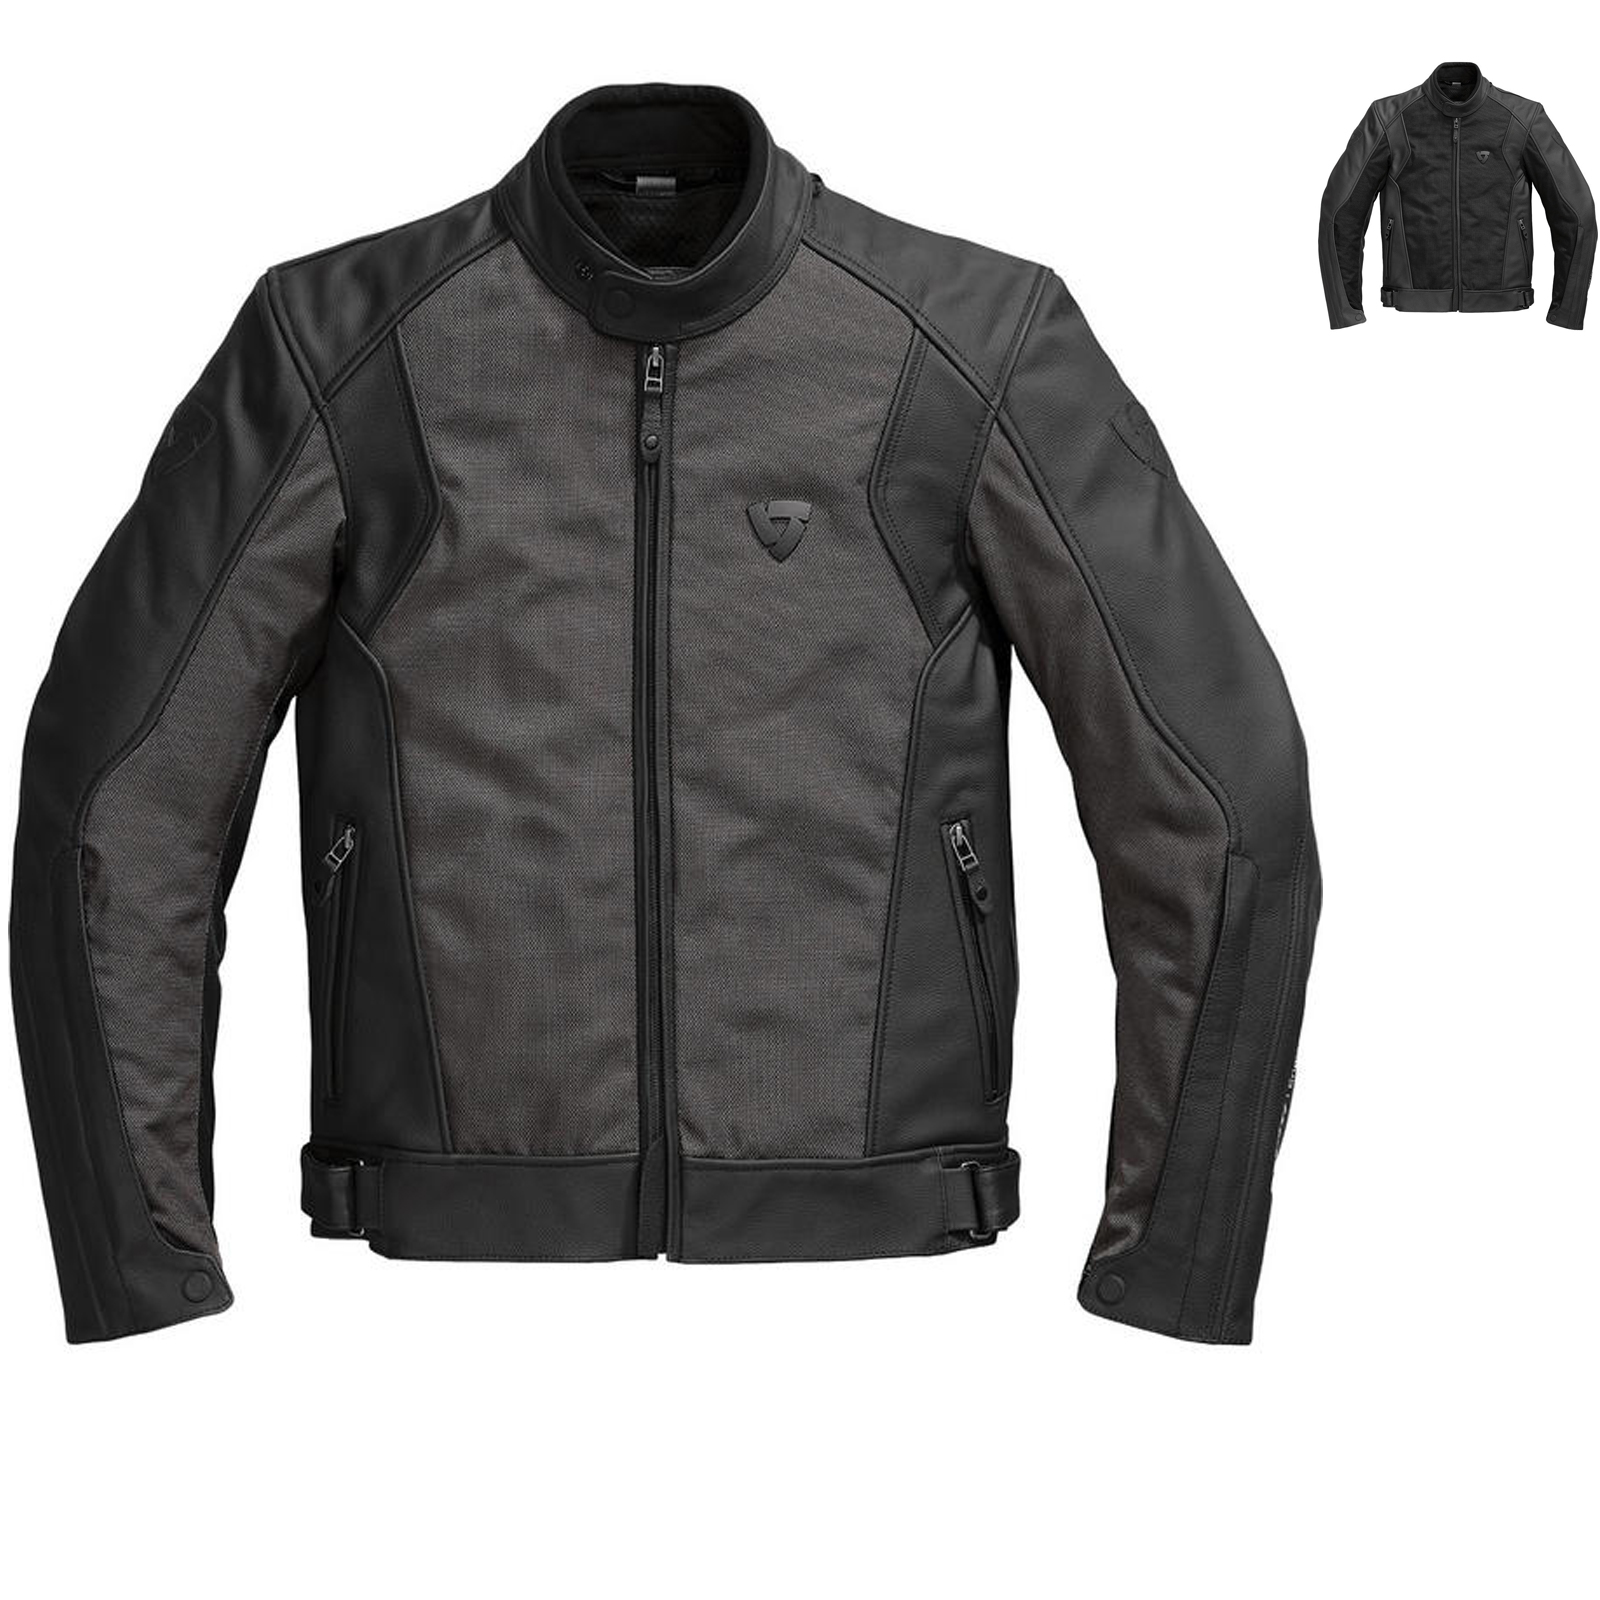 rev it ignition 2 leather motorcycle jacket jackets. Black Bedroom Furniture Sets. Home Design Ideas